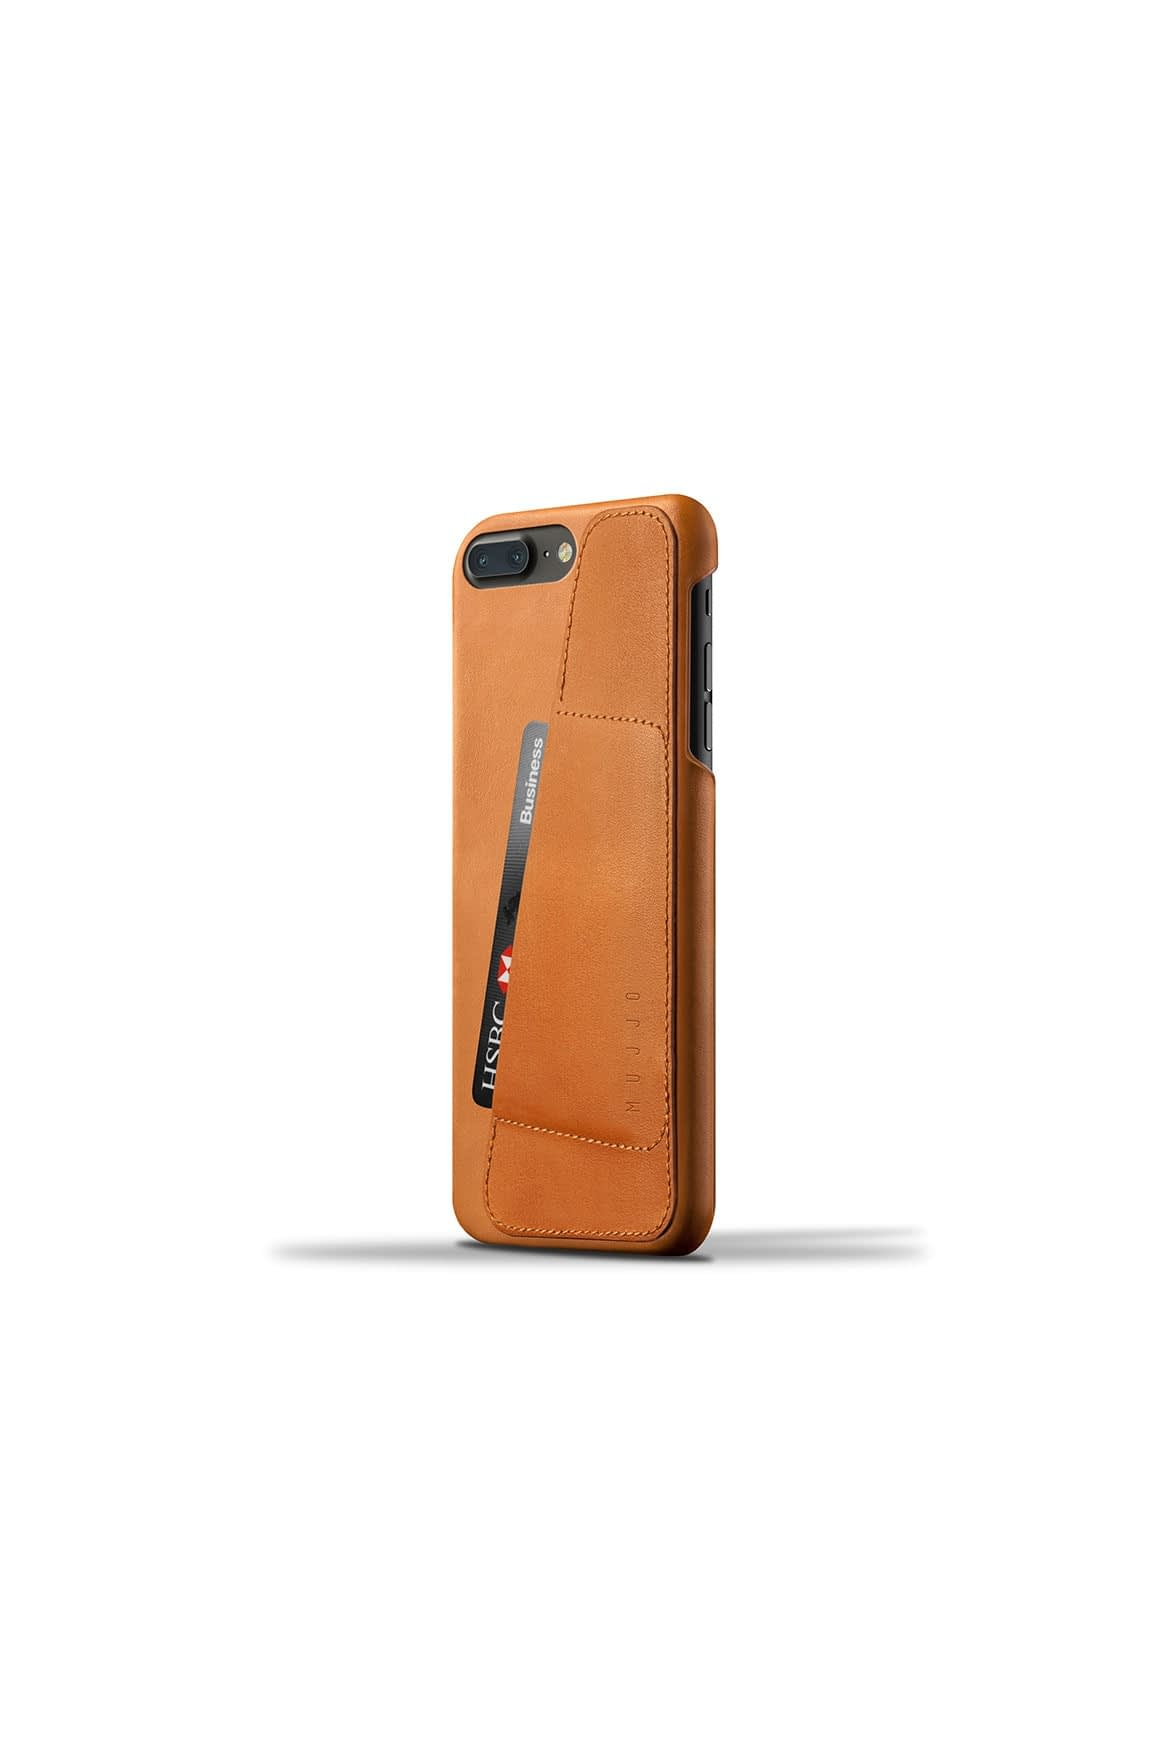 Leather Wallet Case for iPhone 7 Plus Tan Studio 003